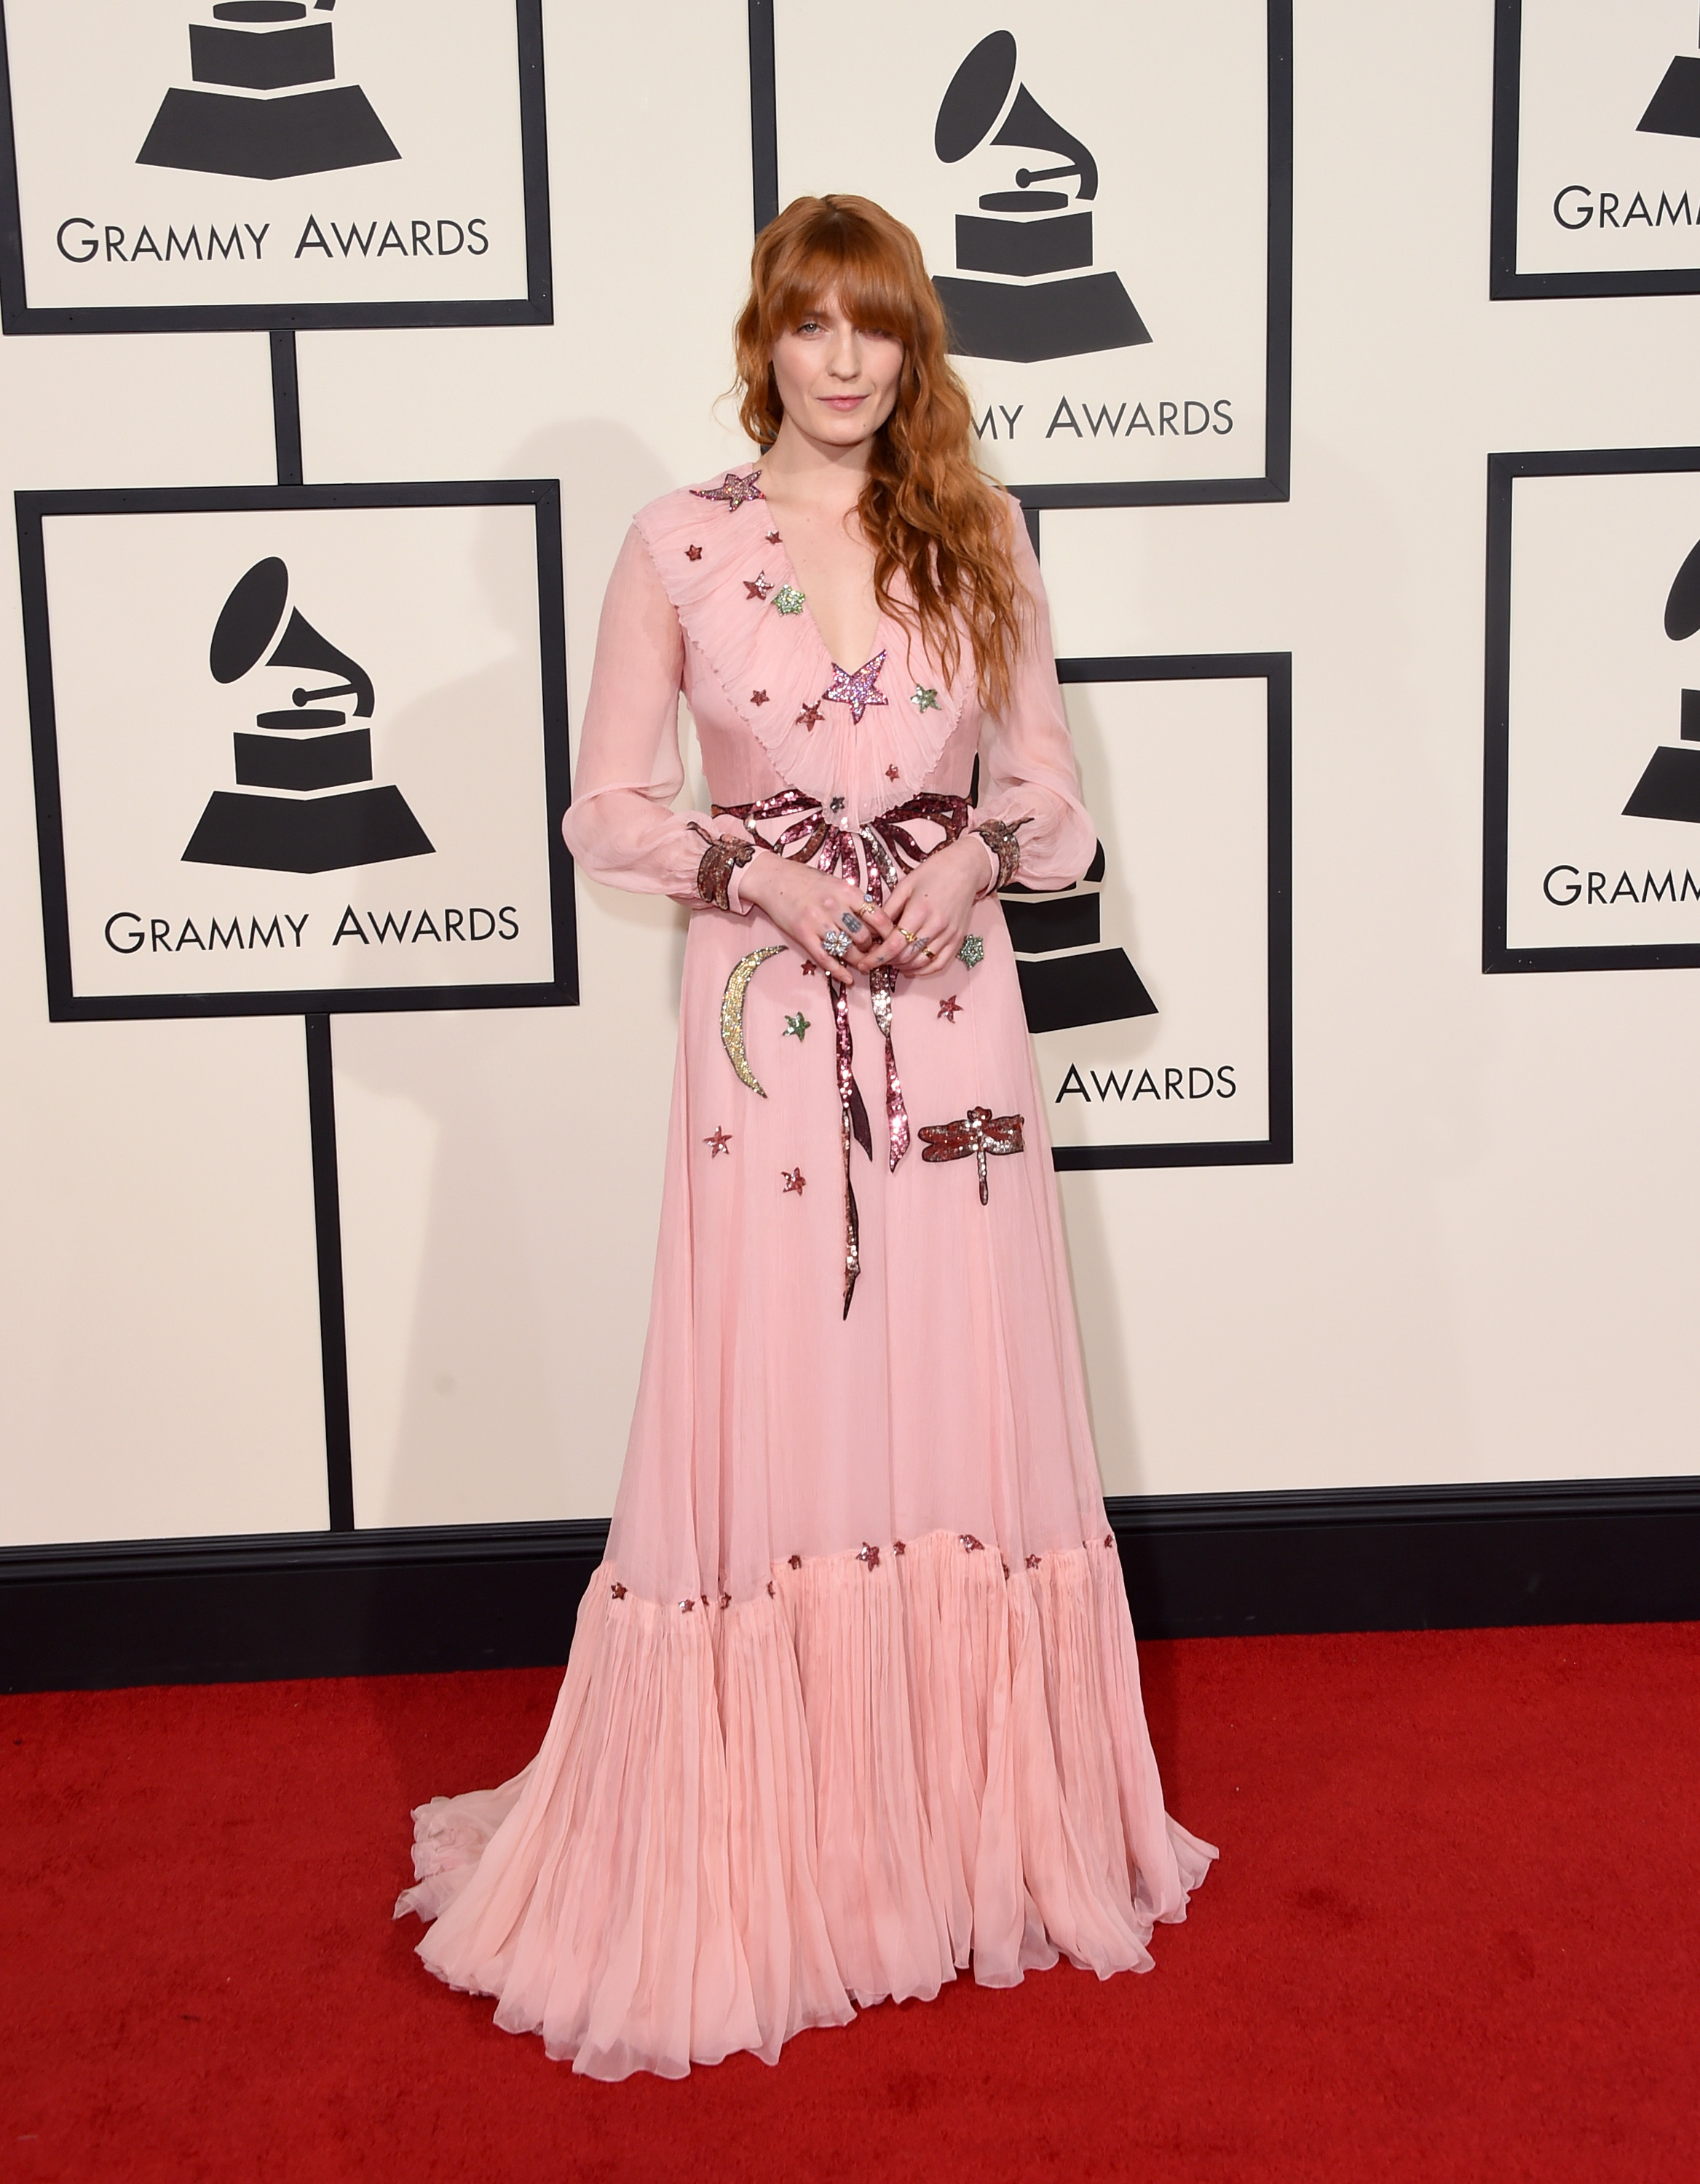 Florence Welch attends the 58th GRAMMY Awards at Staples Center on Feb. 15, 2016 in Los Angeles.